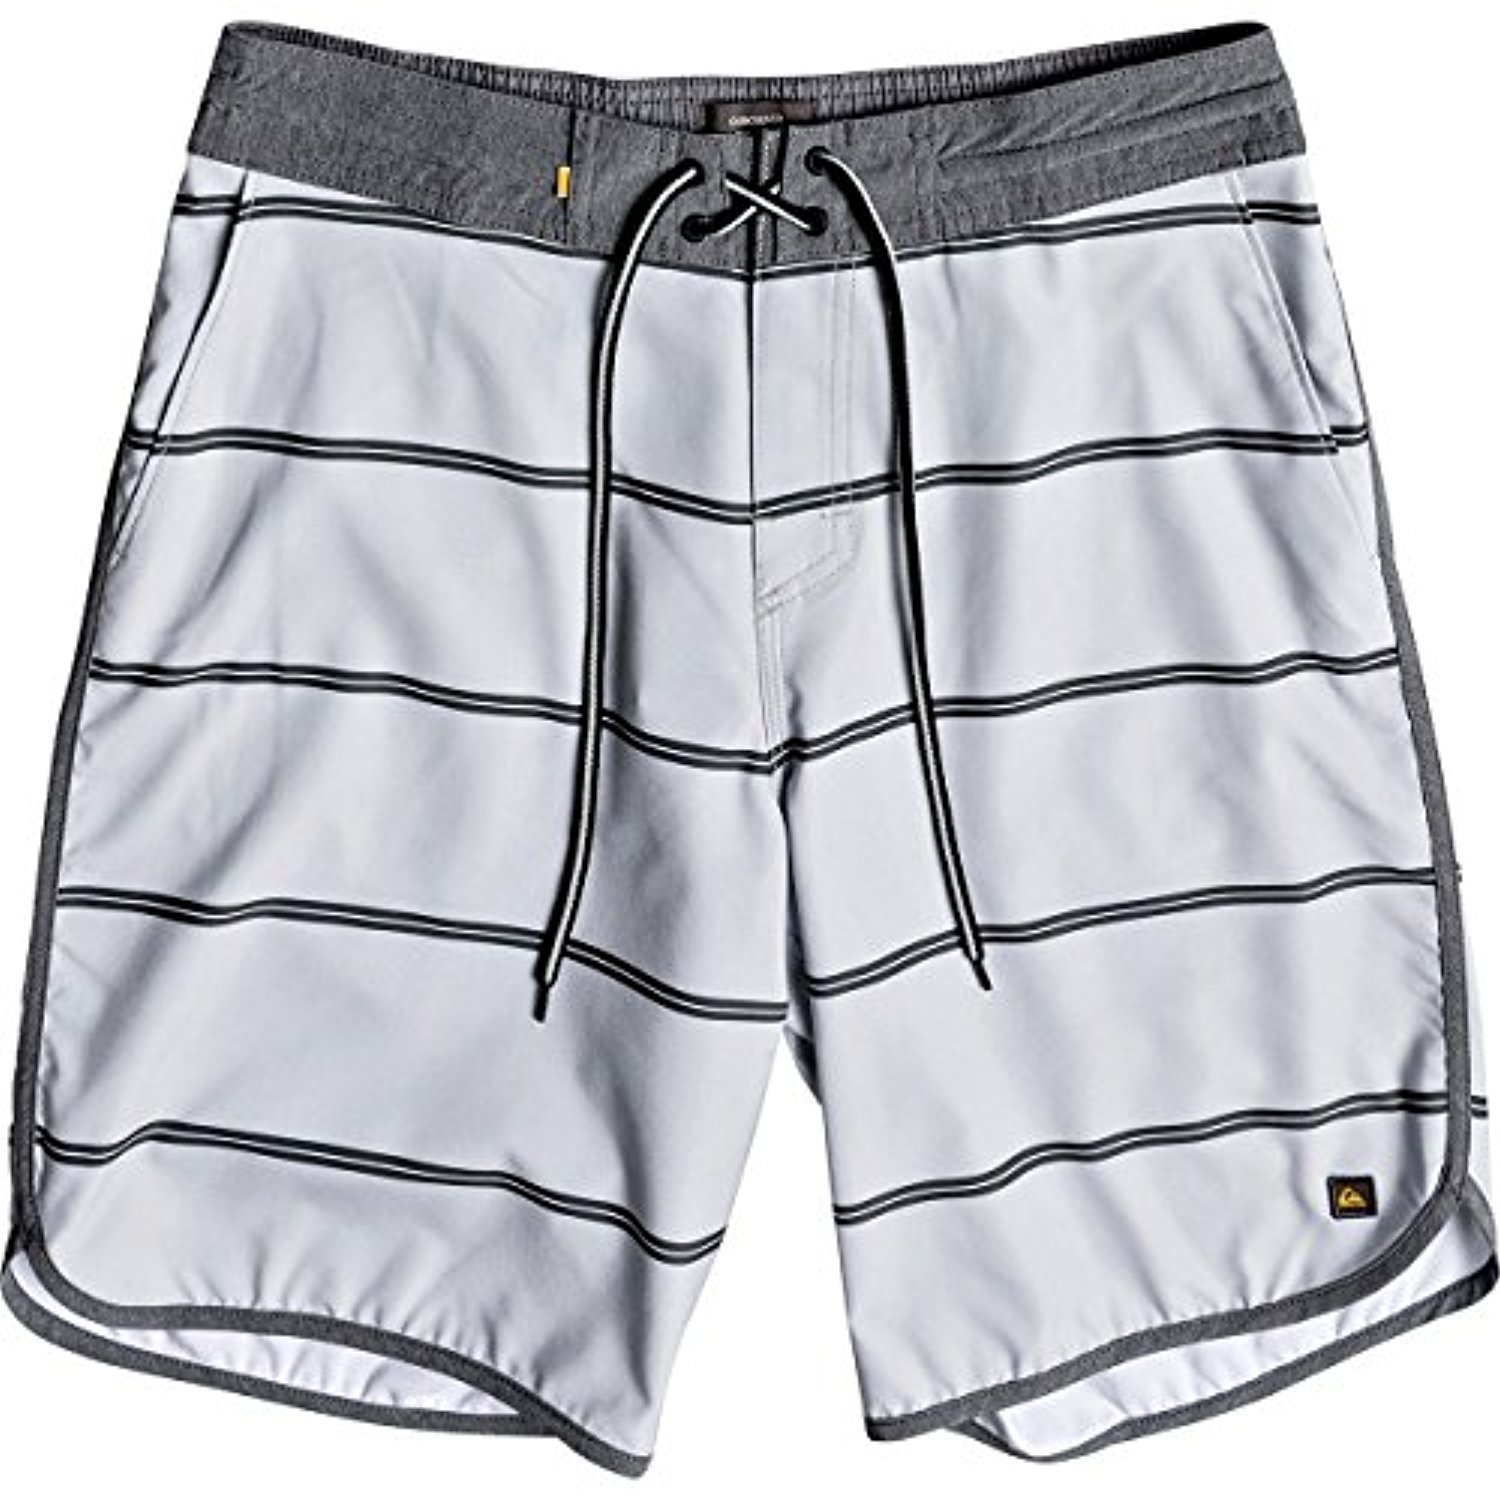 4acc98bb57 Amazon.com: Quiksilver Men's Liberty Overboard Boardshort Swim Trunk:  Clothing